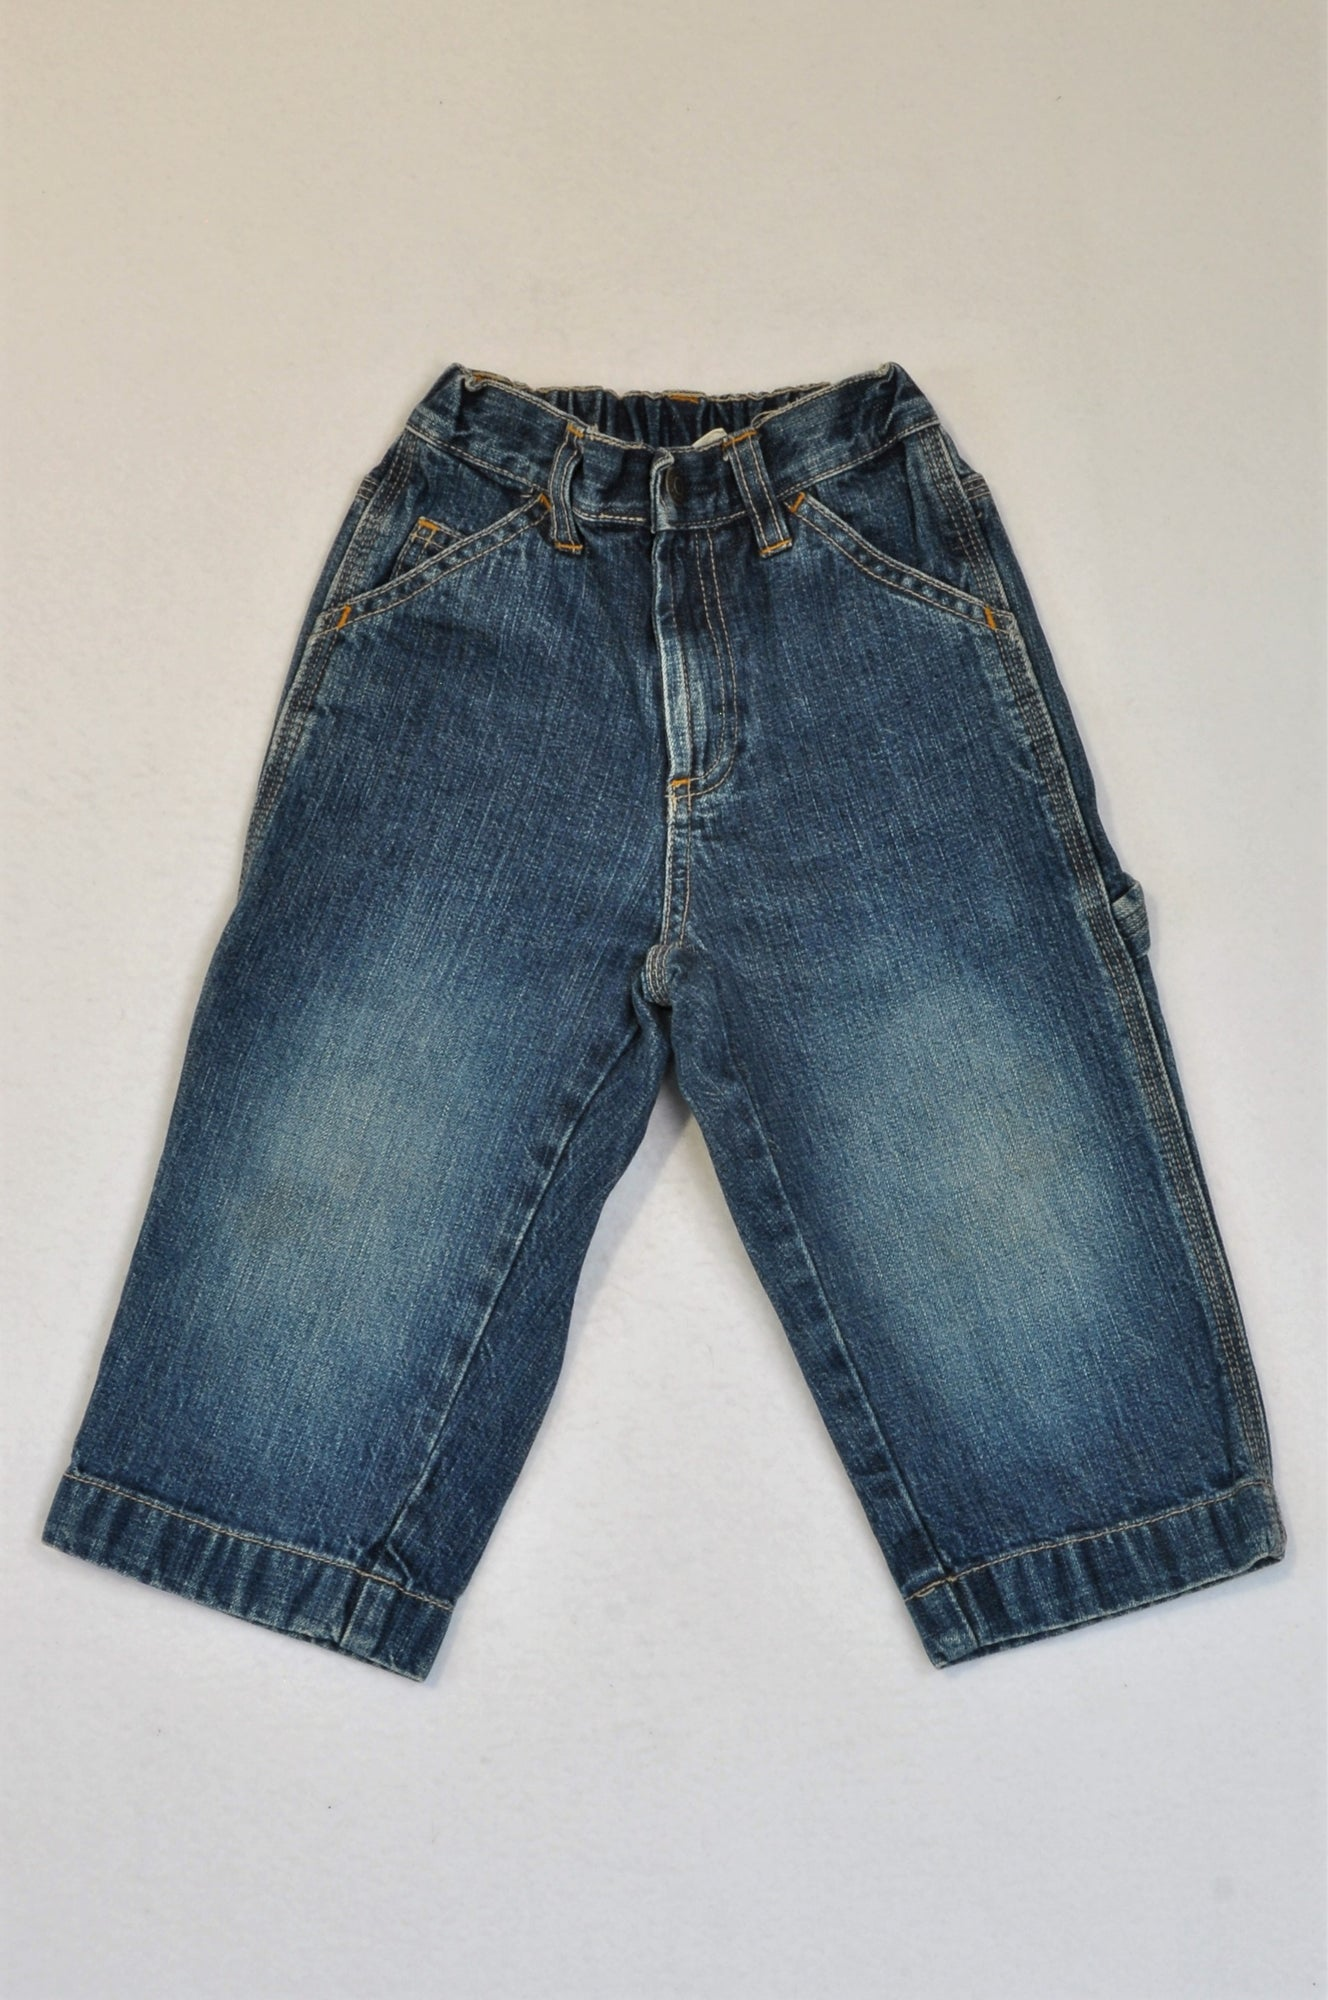 GAP Stretch Banded Straight Leg Jeans Unisex 18-24 months